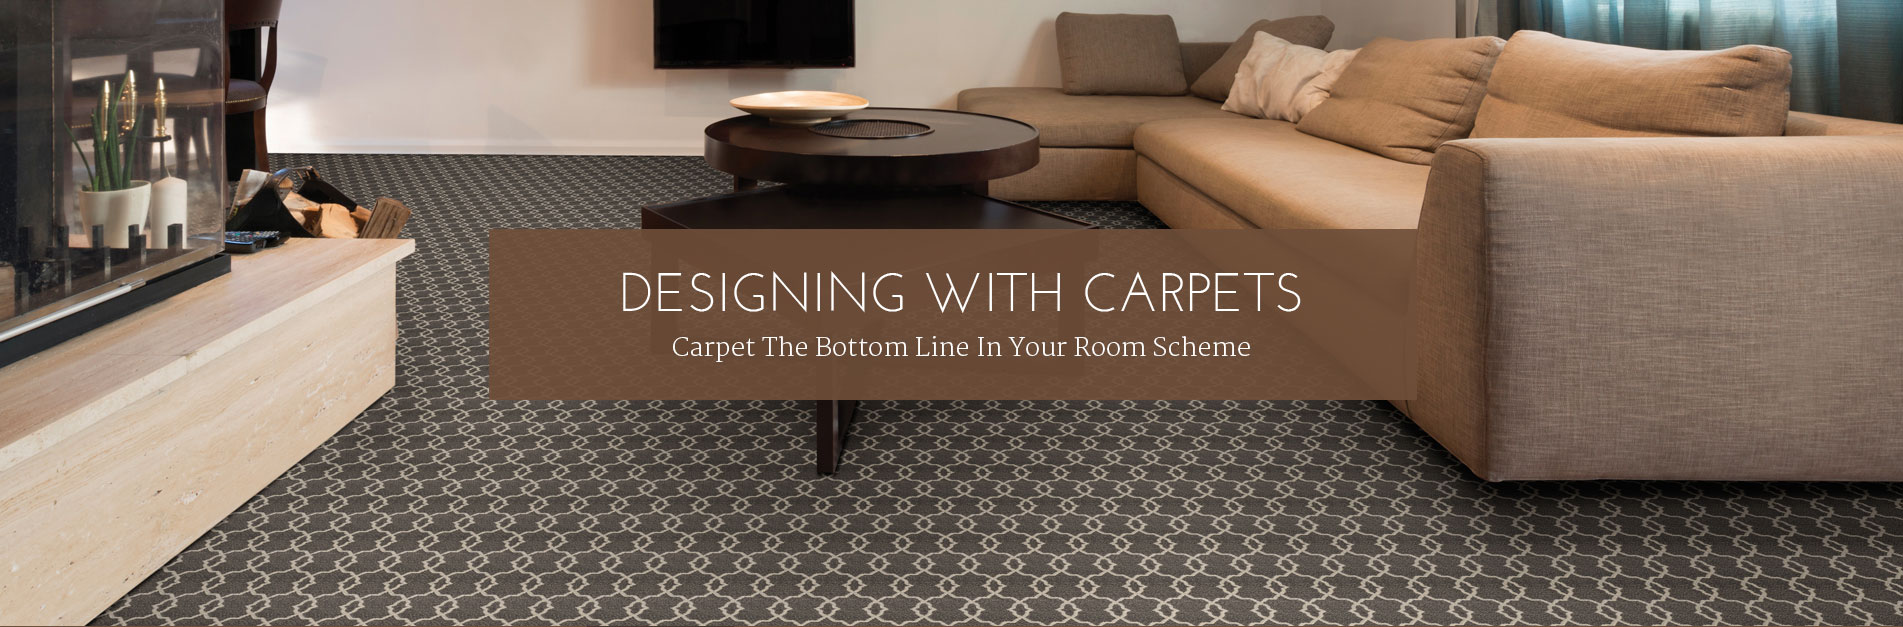 Designing With Carpet ...